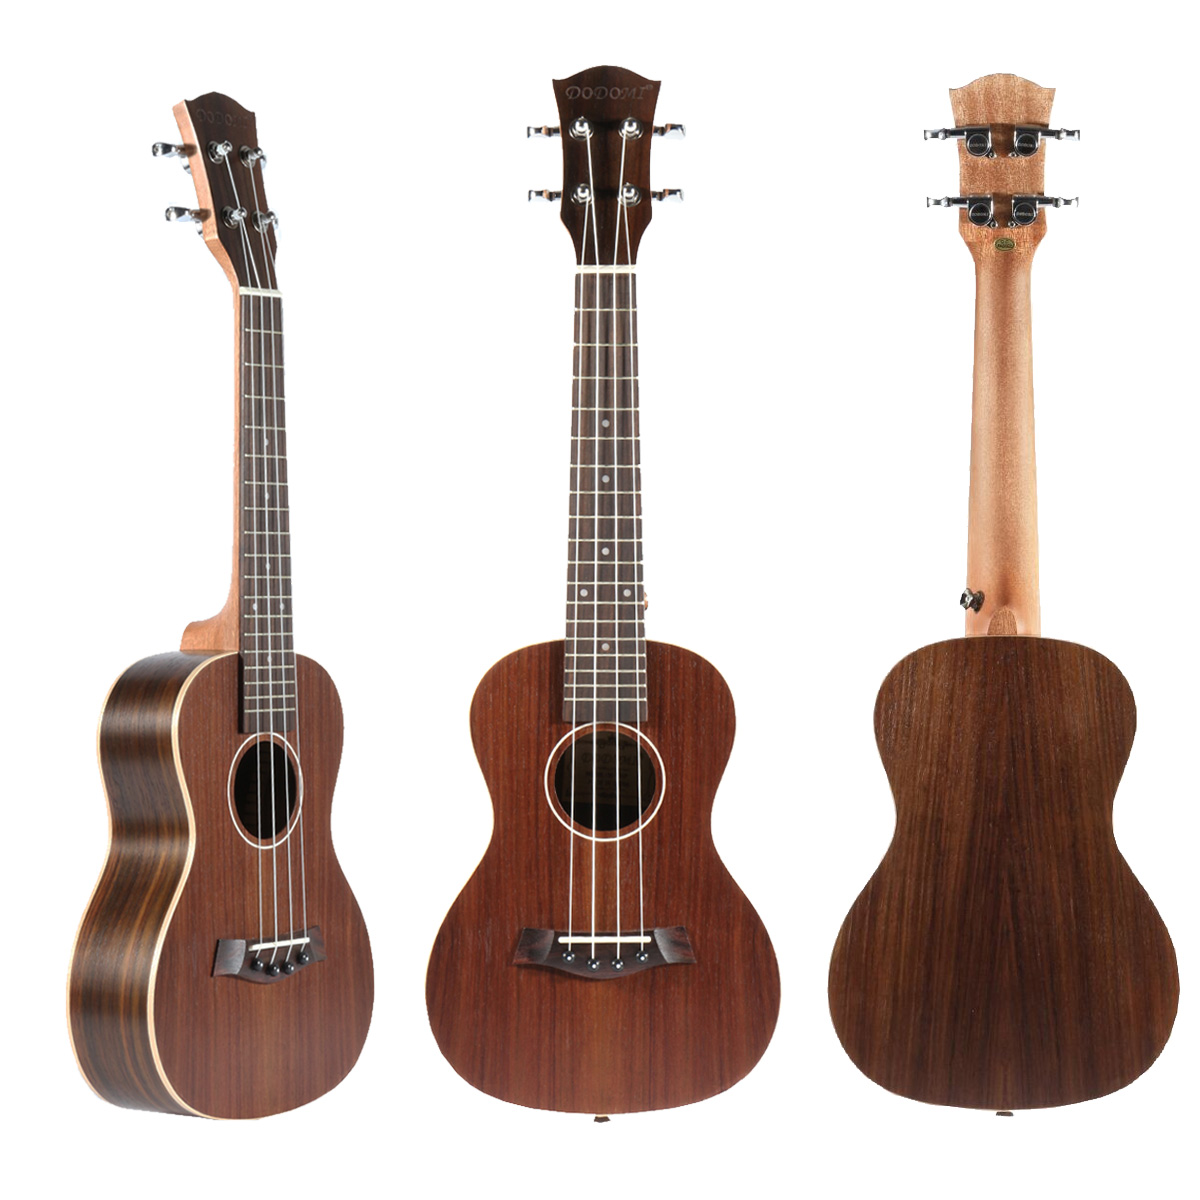 Rosewood 23 Inch 4 Strings Fretboard Concert Ukulele Electric Guitar Guitarra For Musical Stringed Instruments Lovers